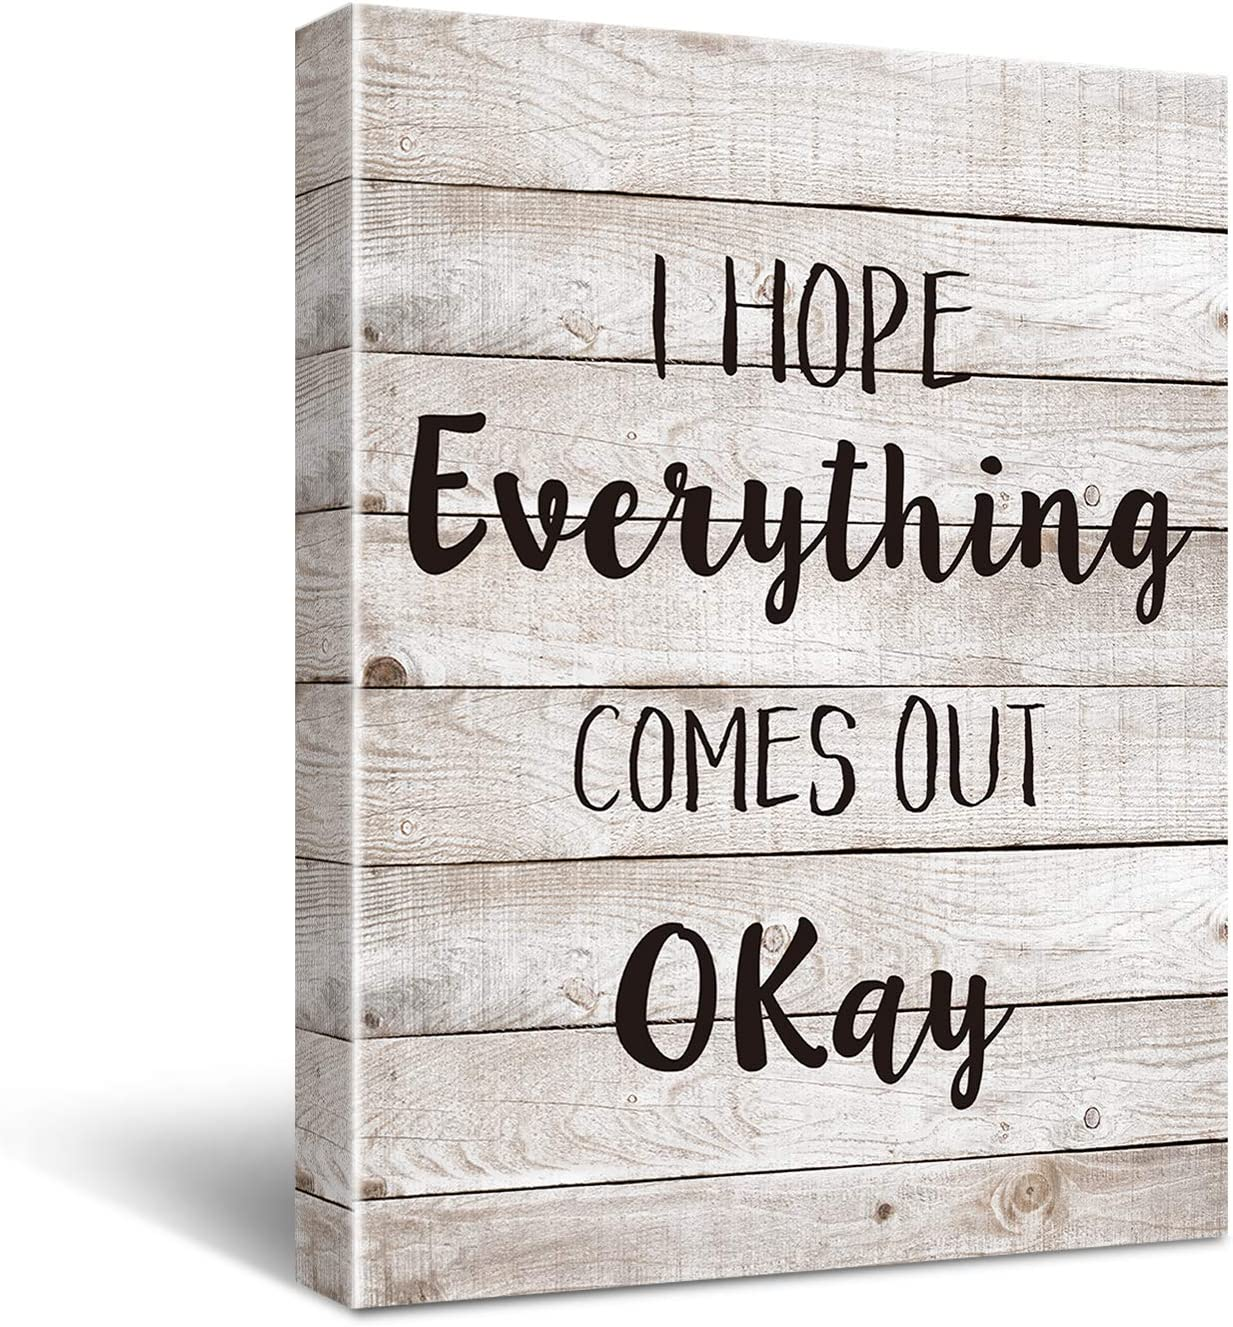 Funny Bathroom Quotes I Hope Everything Comes Out Okay Poster Canvas Wall Art for Restroom/Toilet/Bathroom Home Decor - Ready to Hang Home 11.5x15 Inch